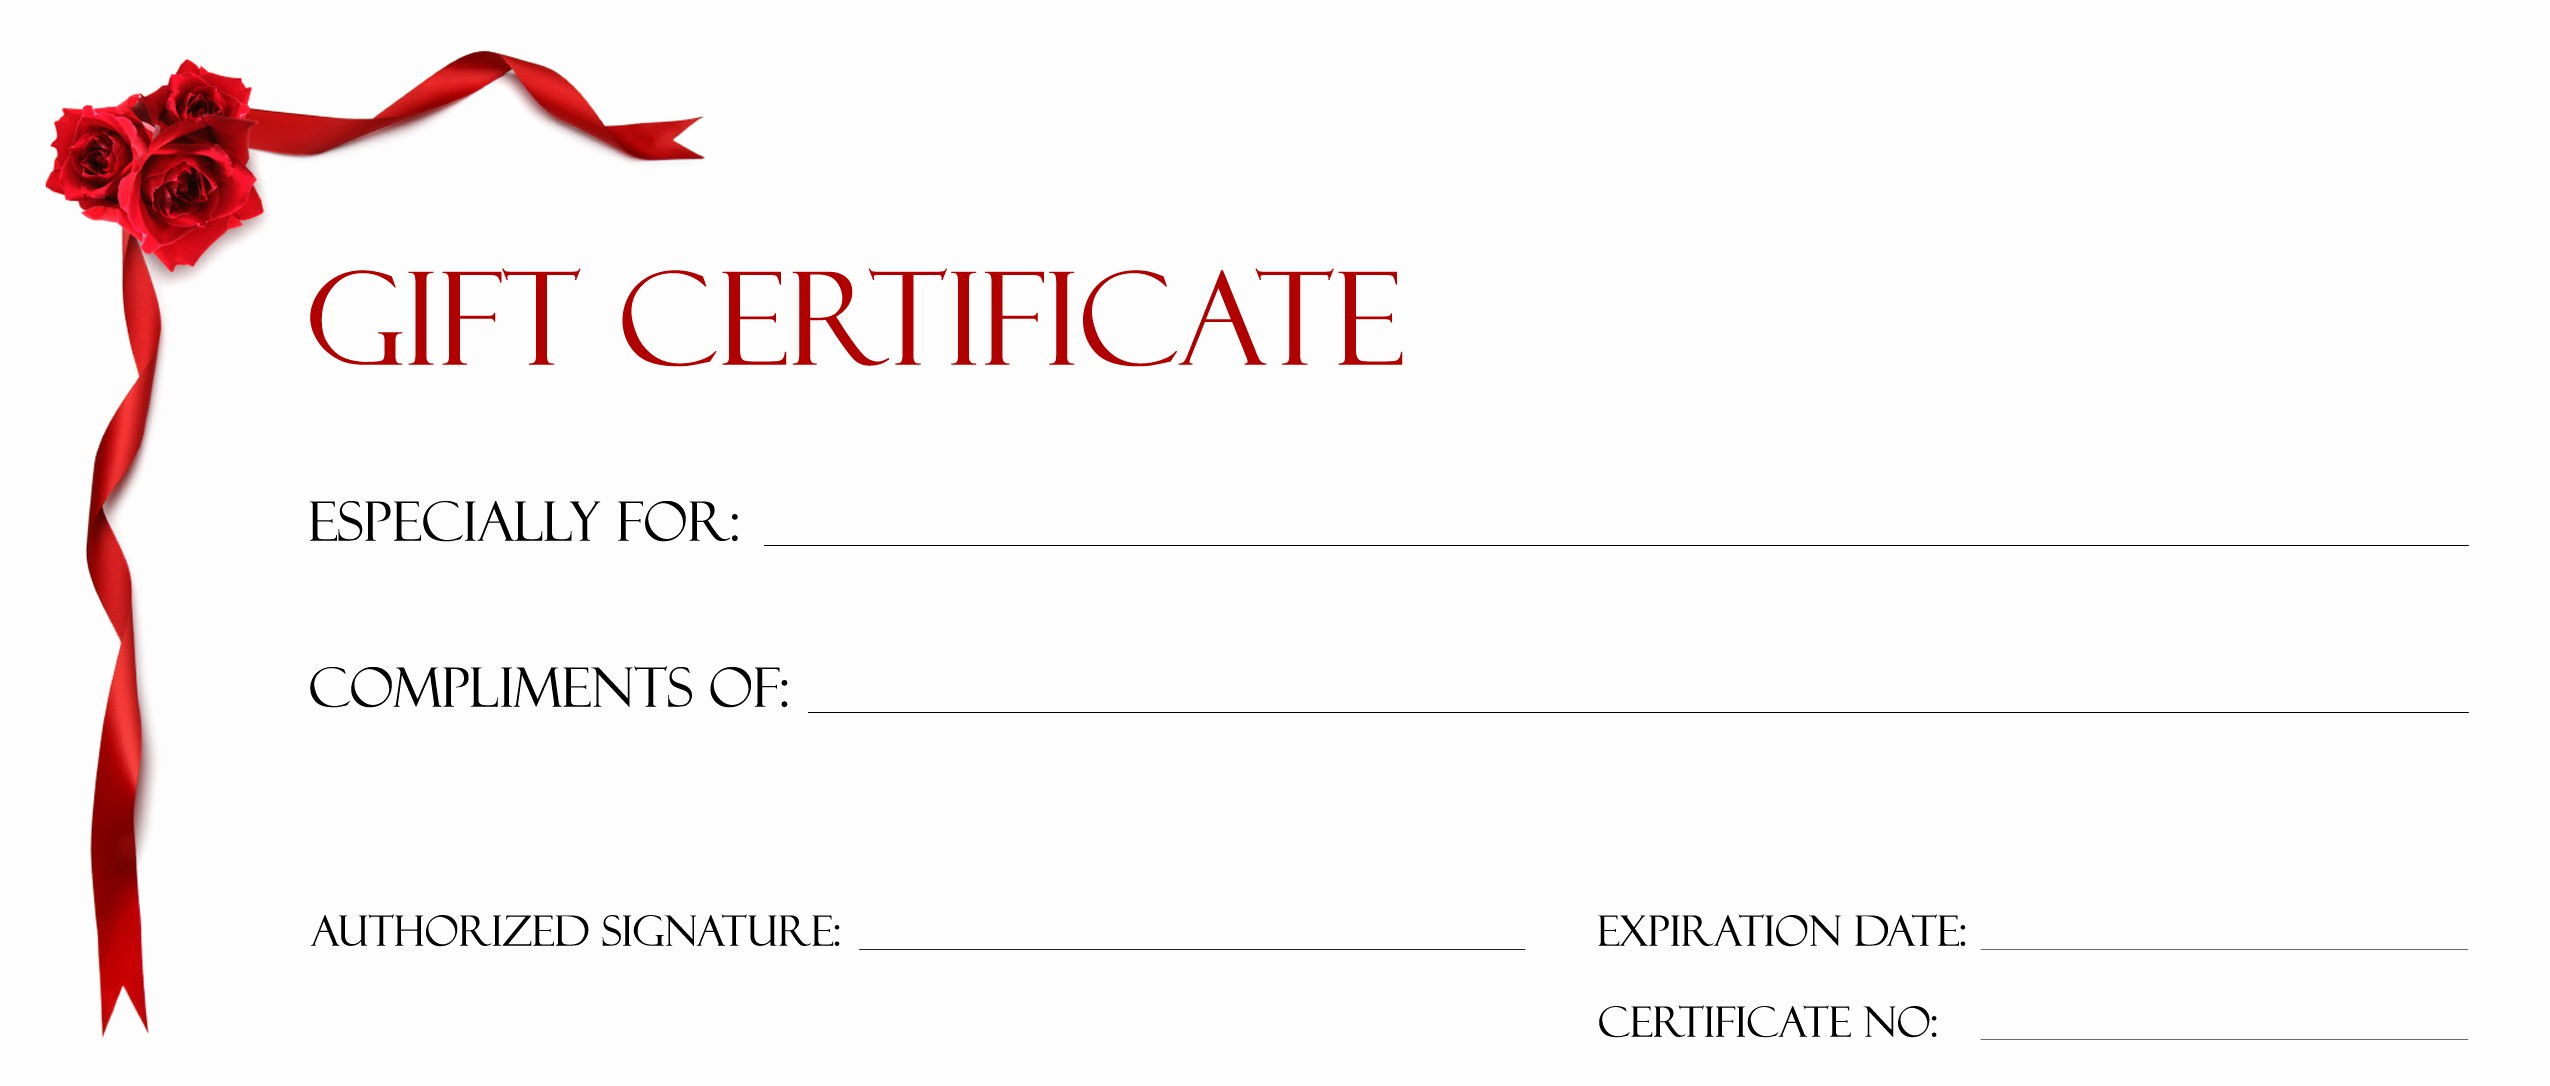 Make A Gift Certificate Free Elegant How to Make A Gift Certificate In Word